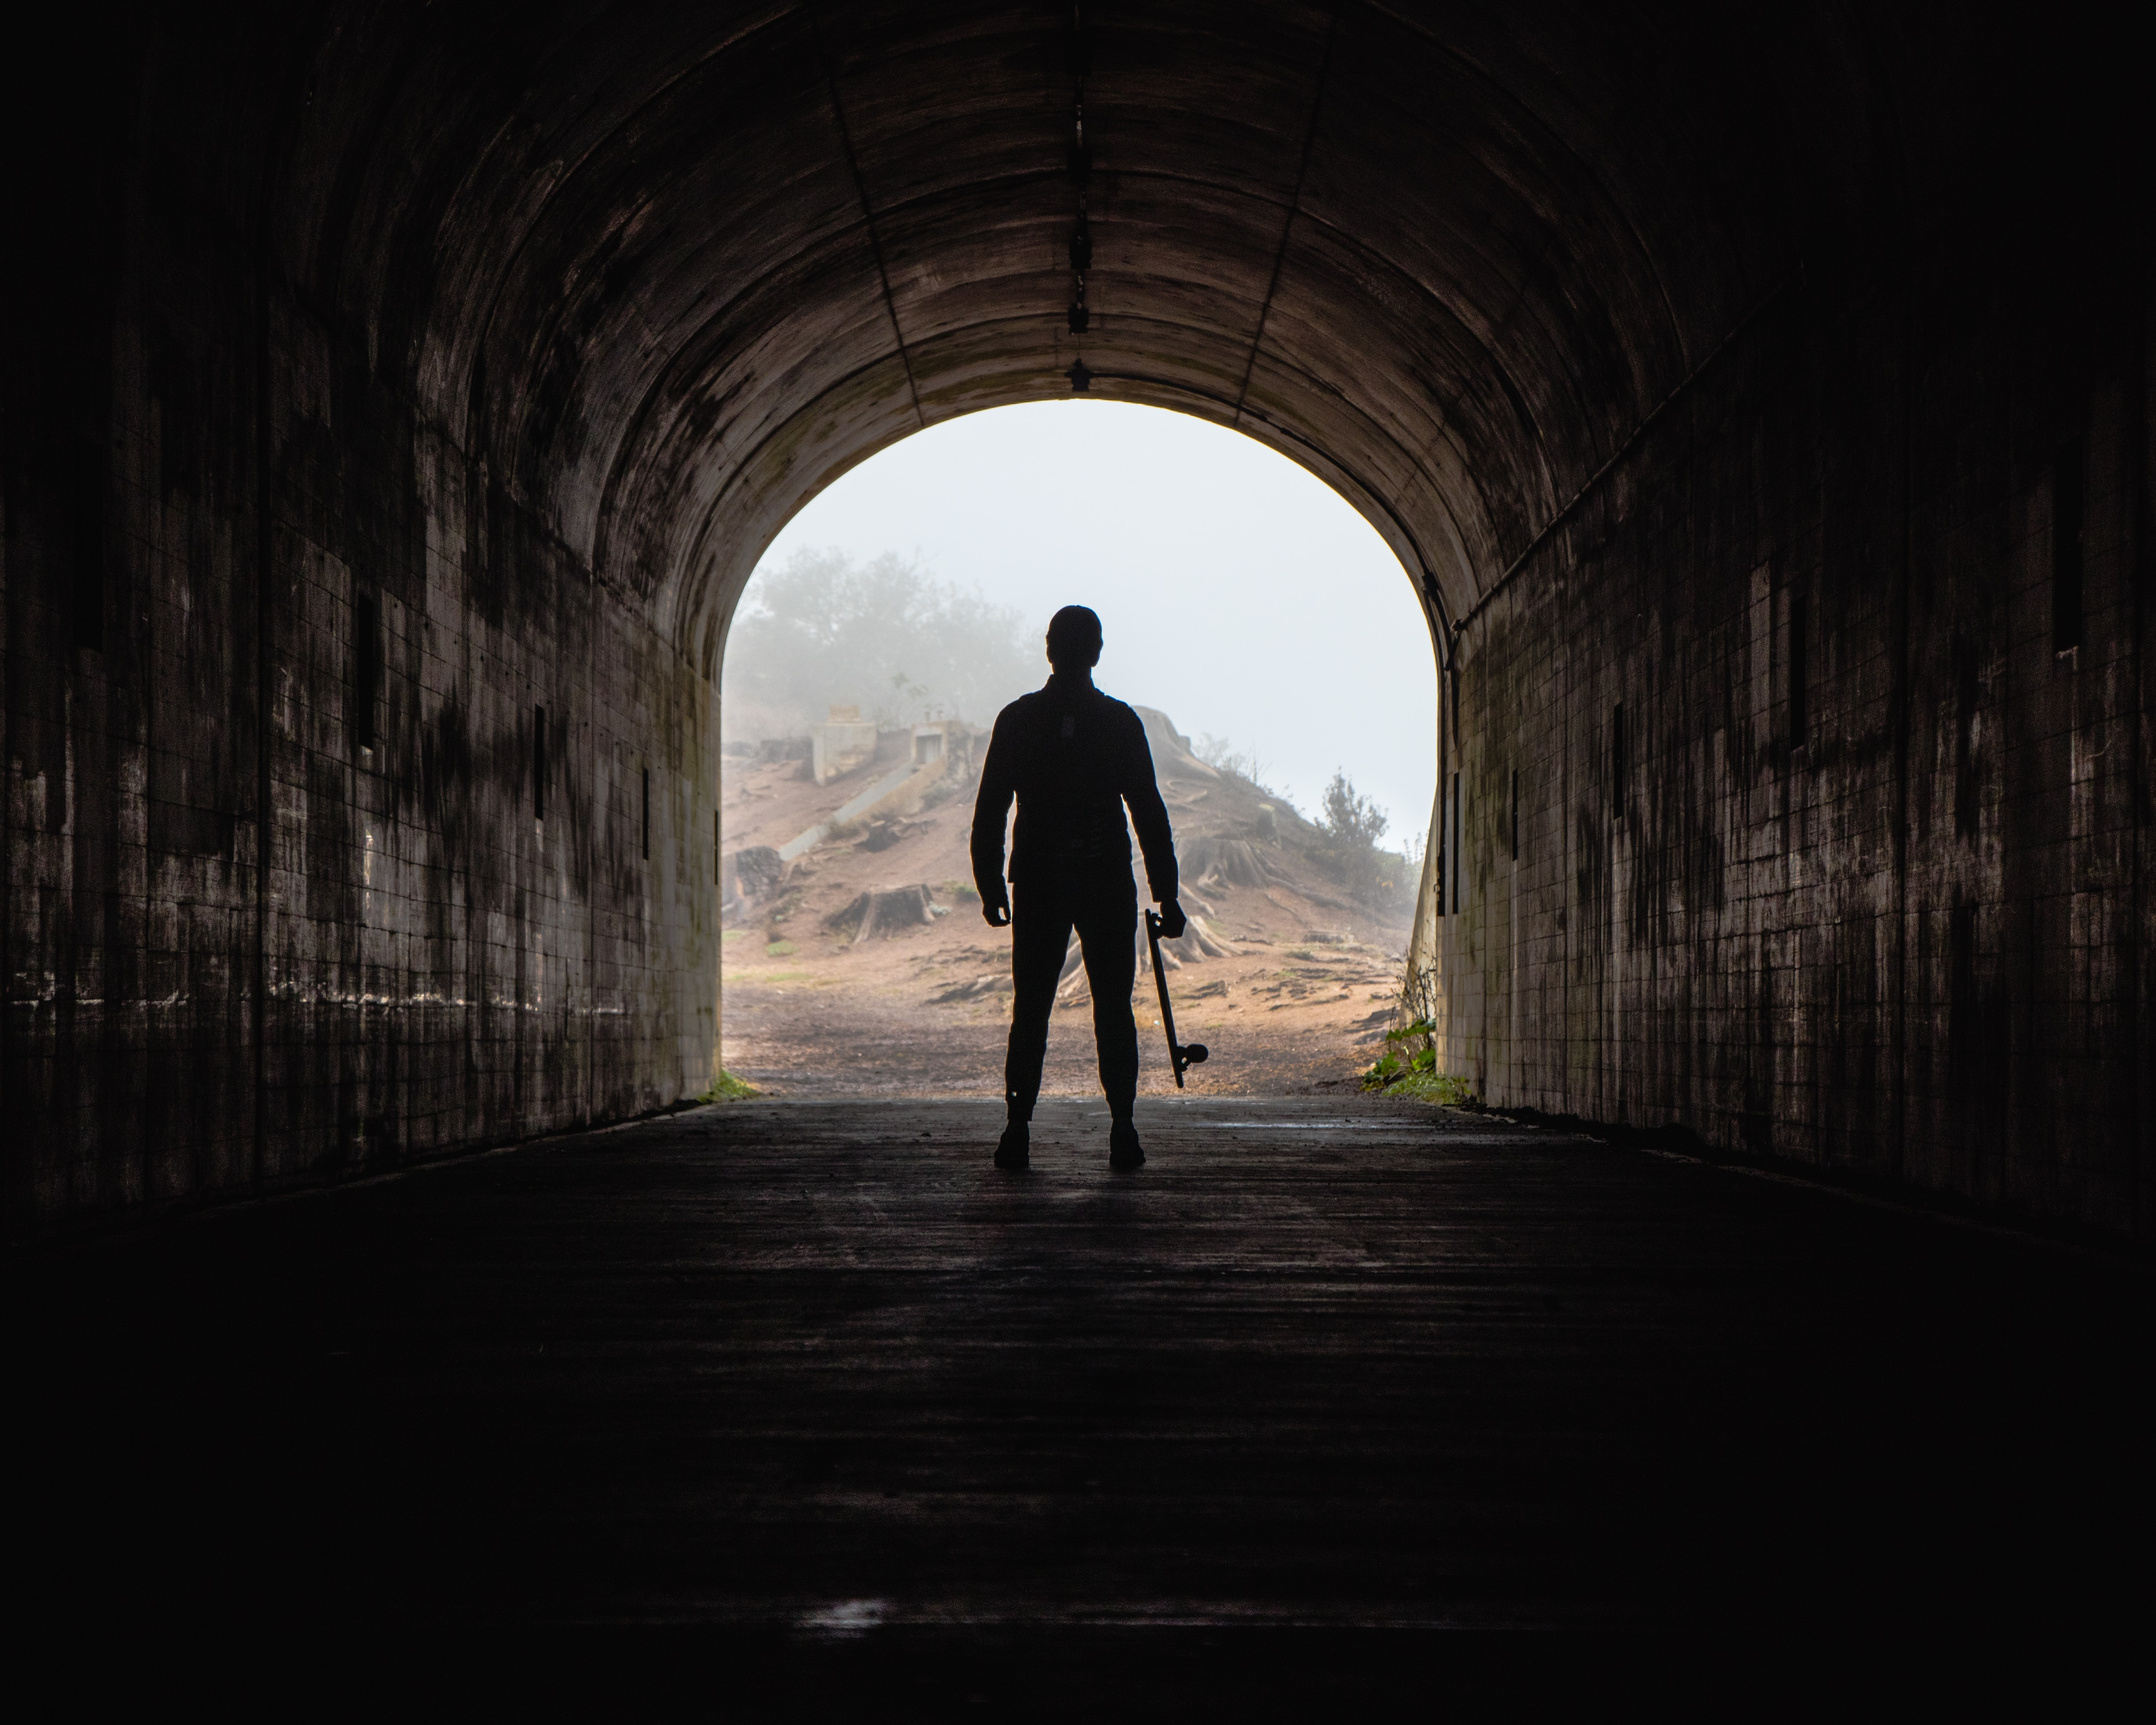 silhouette photo of a man carrying skateboard inside tunnel